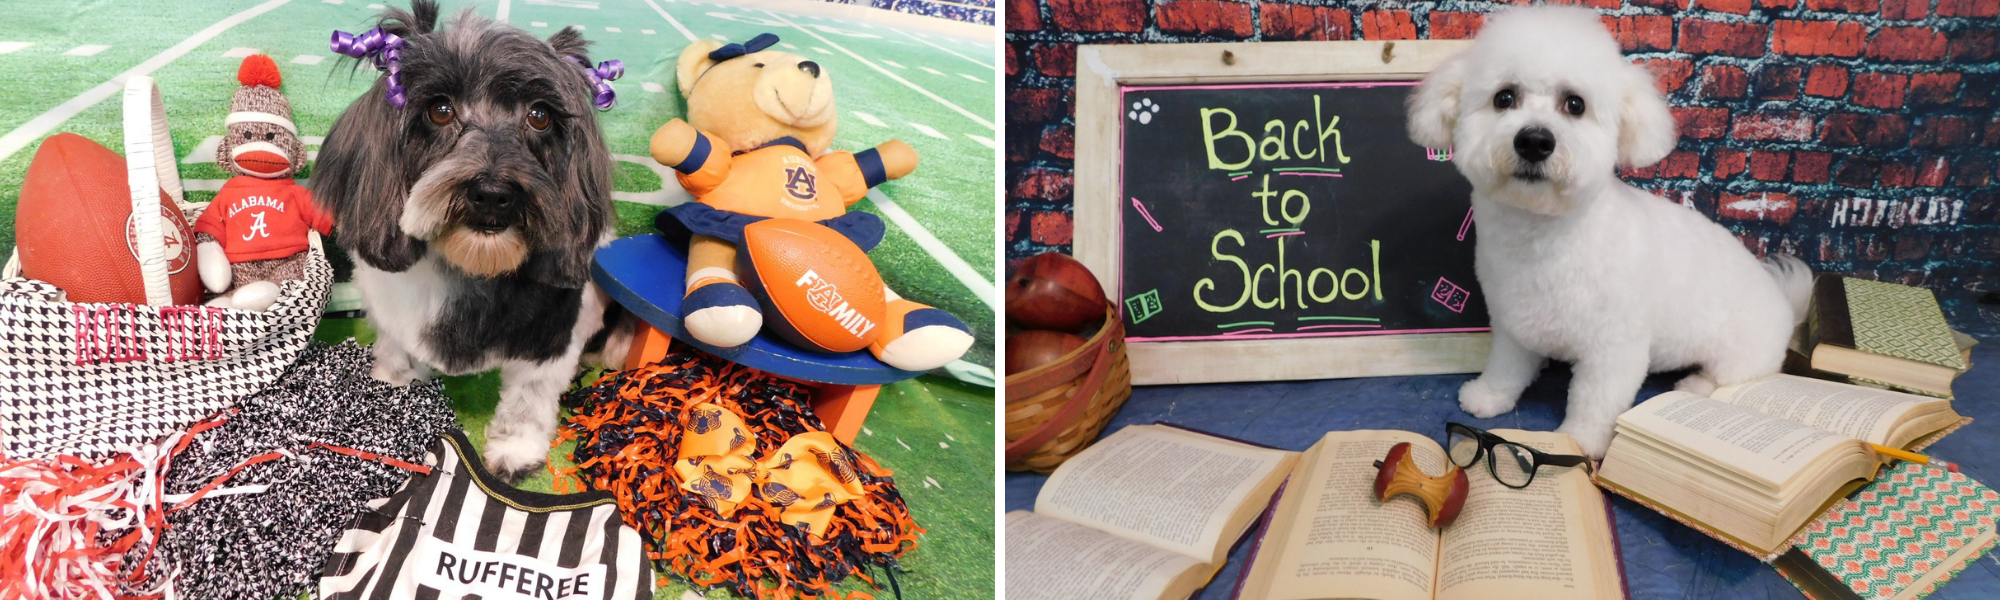 Football & Back to School Pet Photos